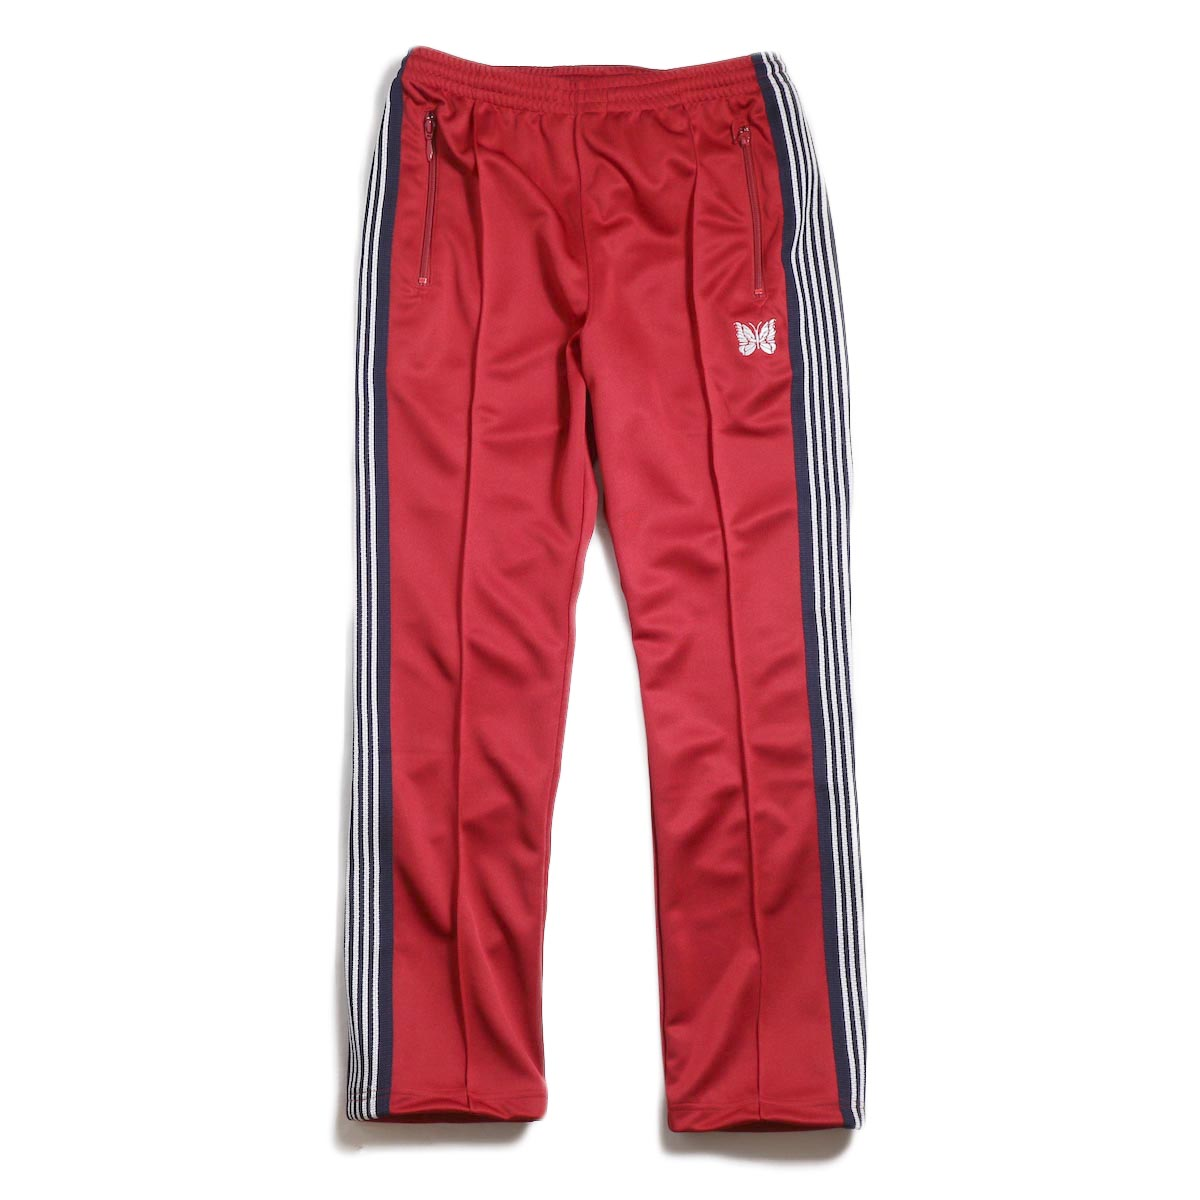 Needles / Narrow Track Pant -Poly Smooth (Red)